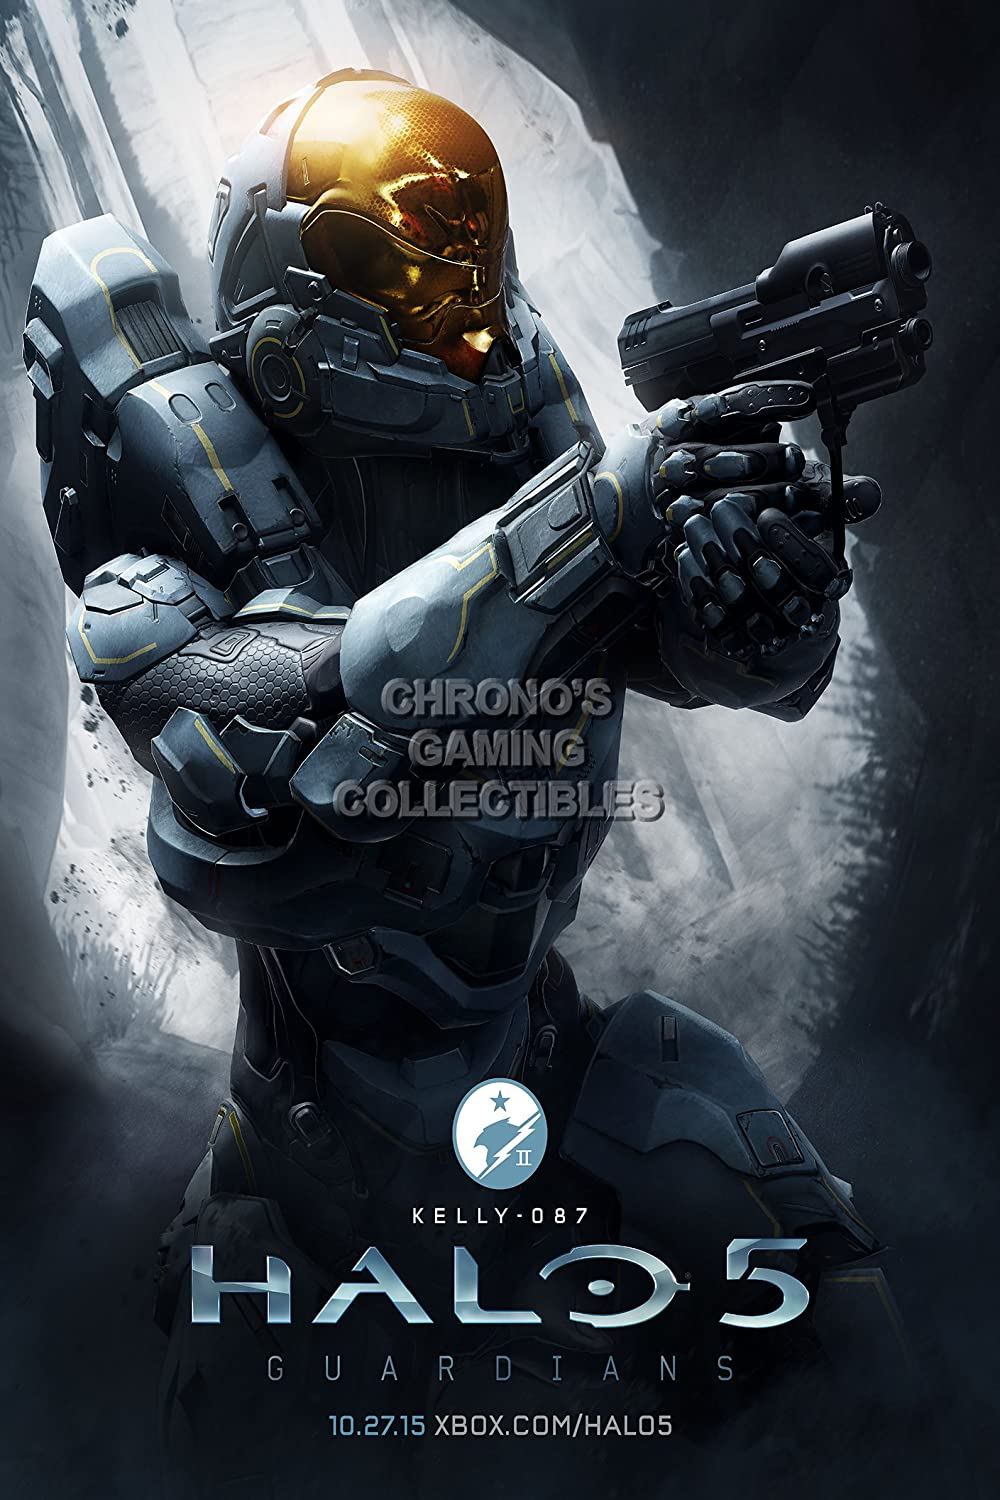 CGC enorme cartel – Halo 5 Kelly Xbox 360 One – hal036, papel, 36 ...